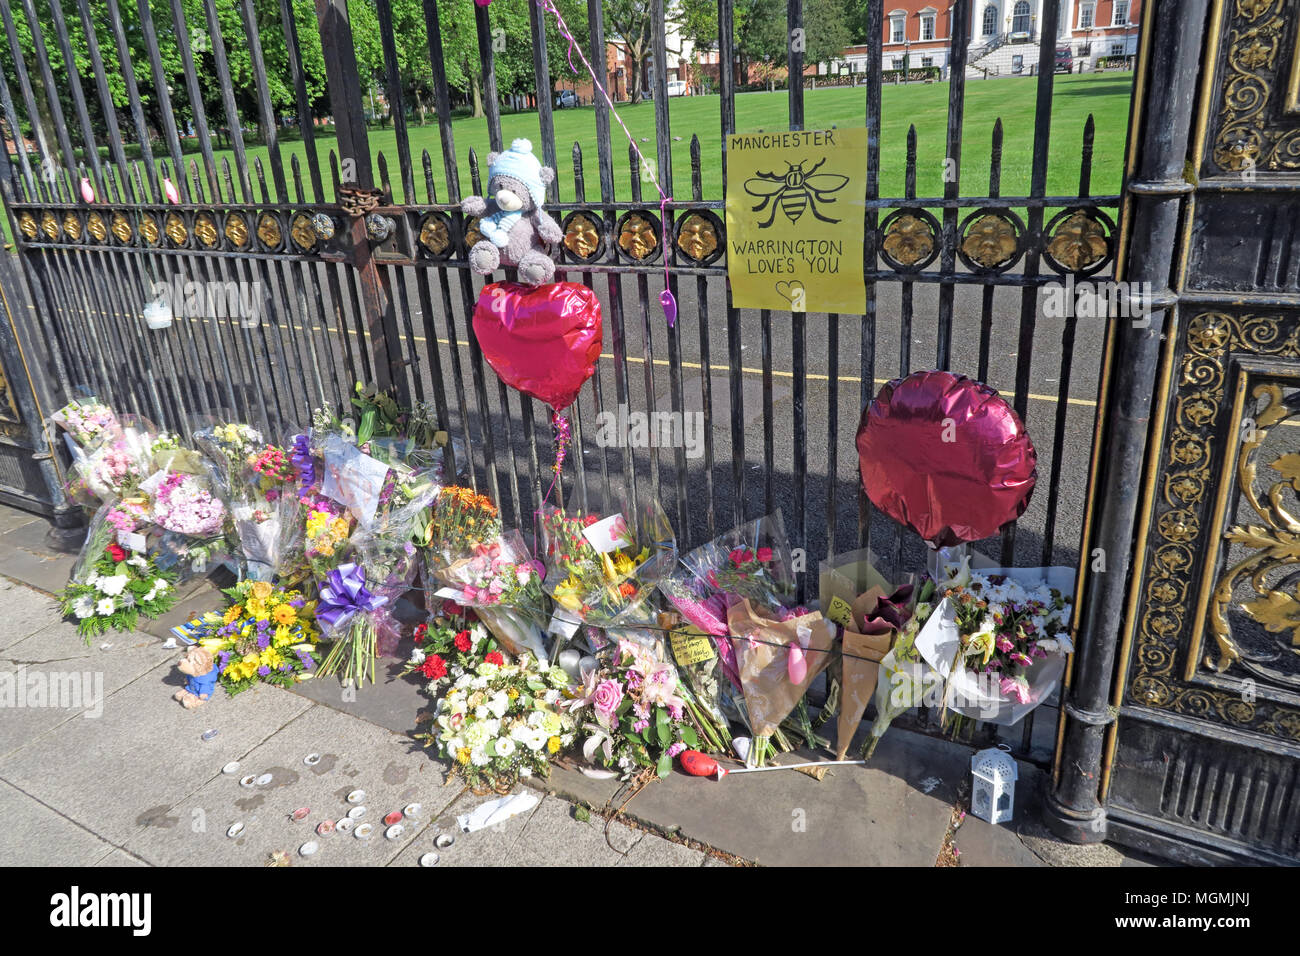 Golden Gates Sankey St Warrington after Manchester Bombing 2017 Stock Photo